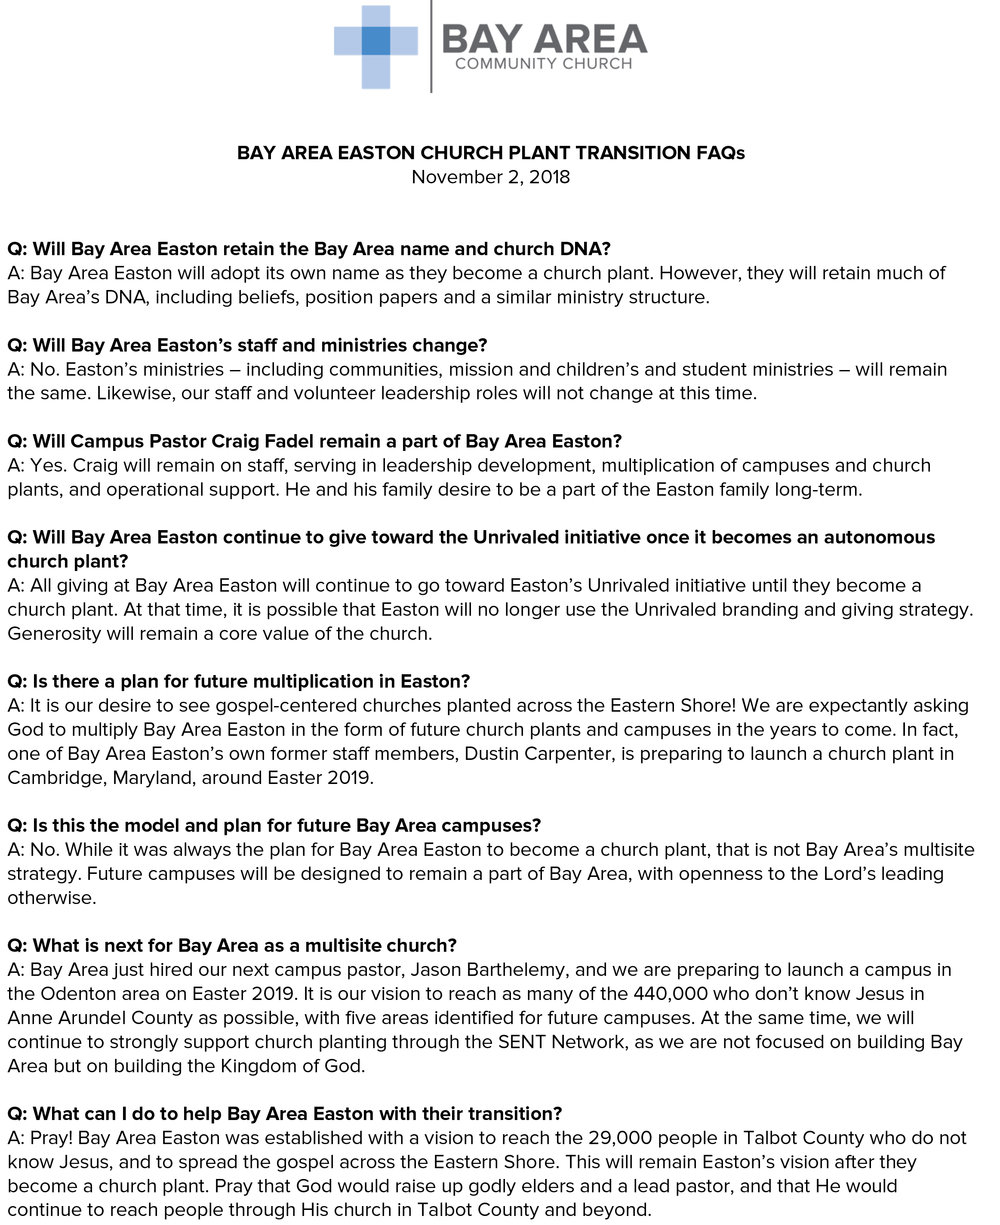 Bay Area Easton Church Plant Transition FAQs.jpg